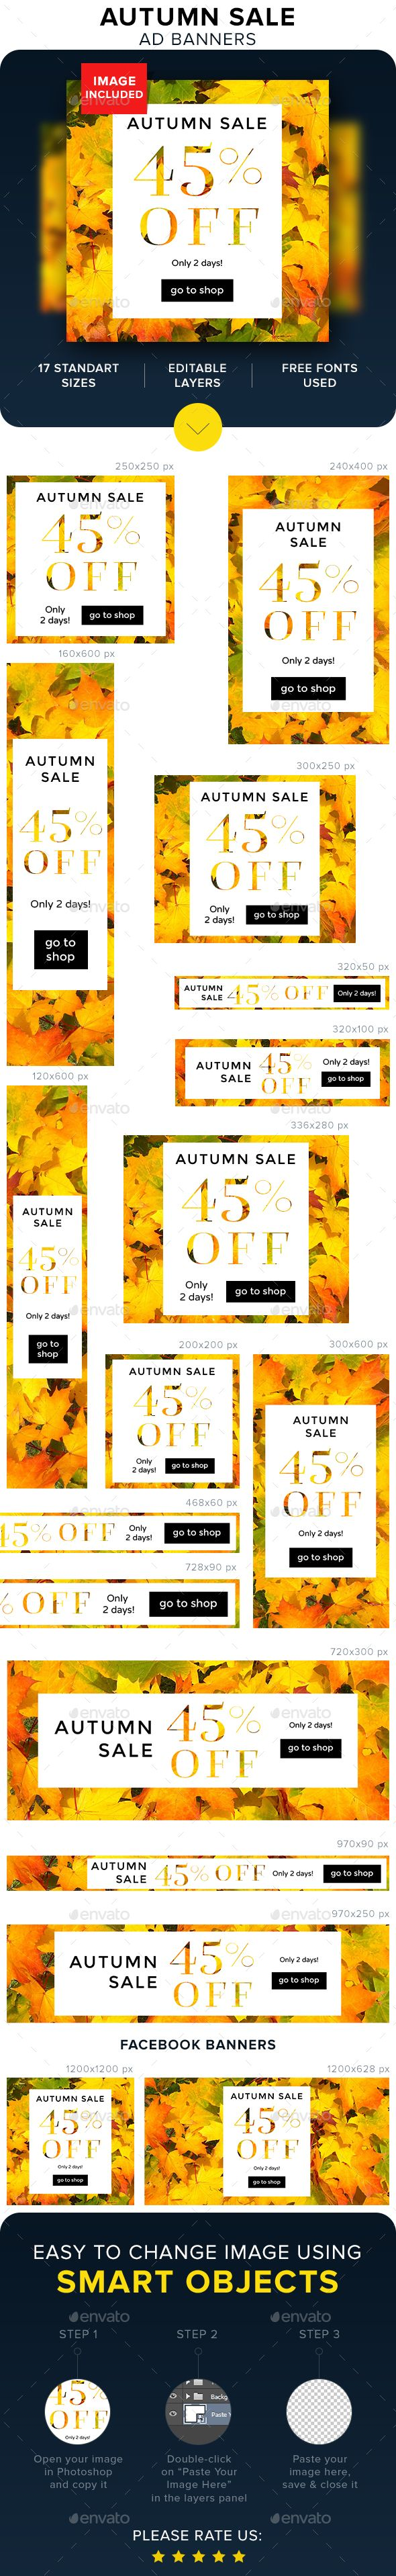 Autumn Sale Banners, ready web design in psd template for seasonal sale, image with leaf included.